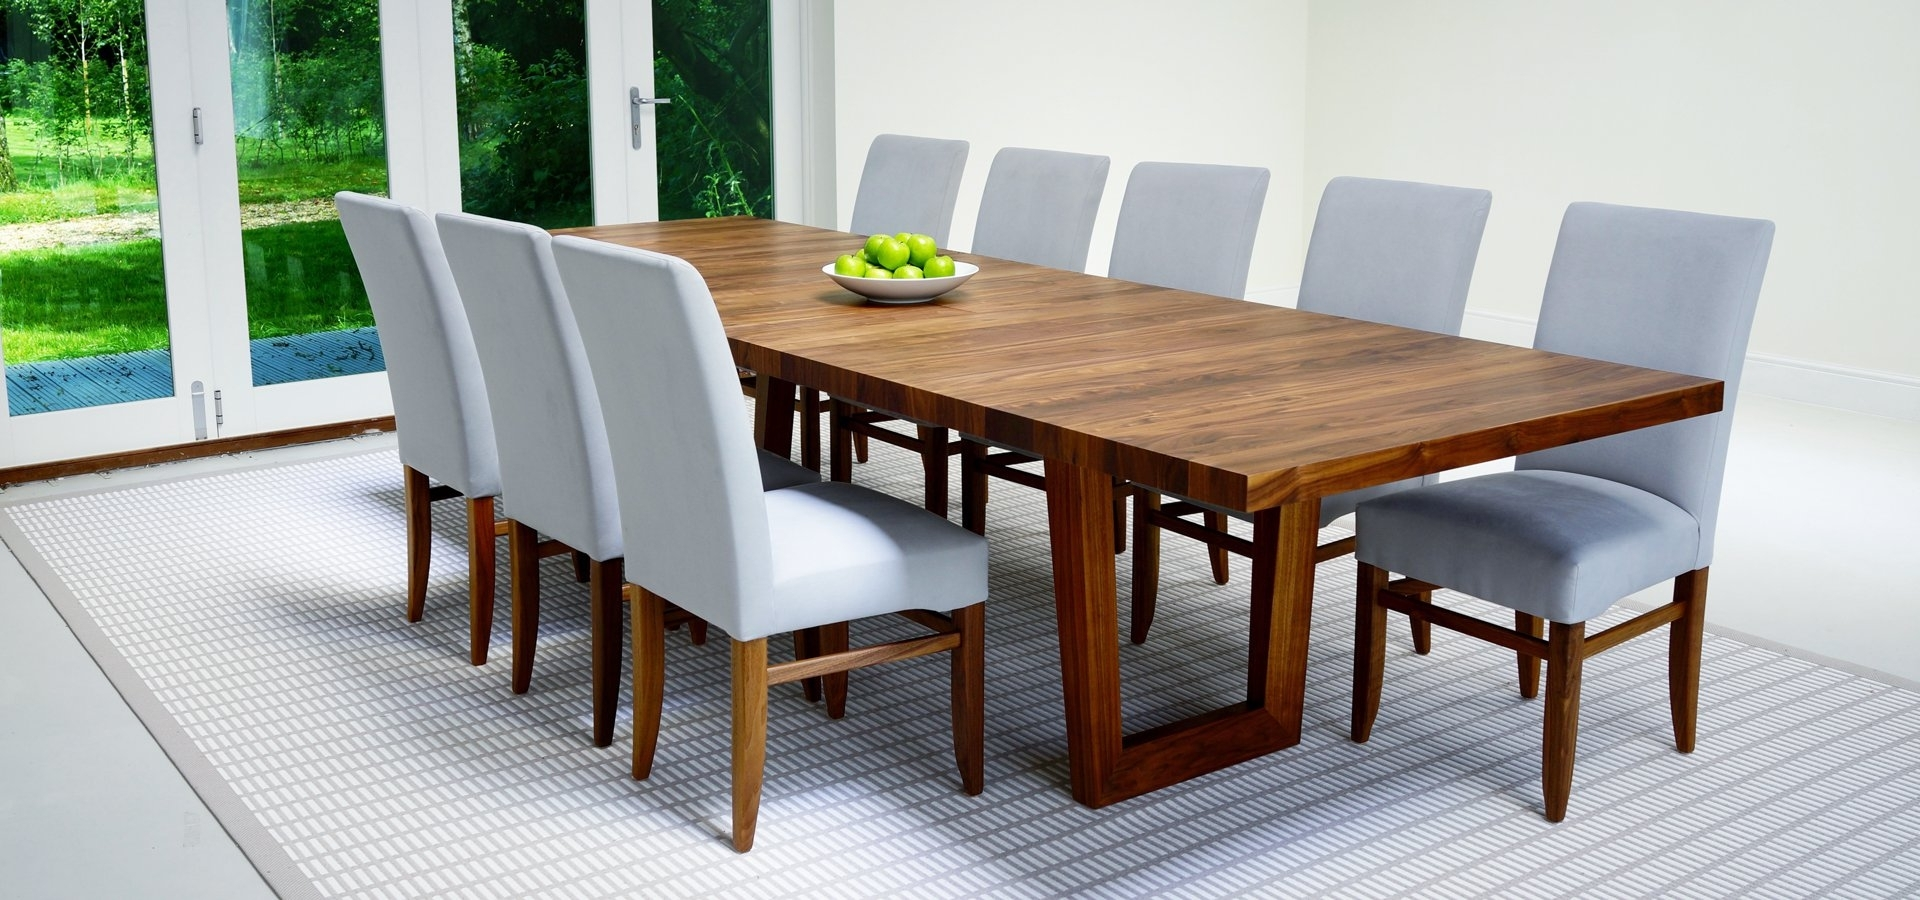 Contemporary Extending Dining Tables Intended For Well Known Modern Extendable Dining Table Set – Castrophotos (View 14 of 25)